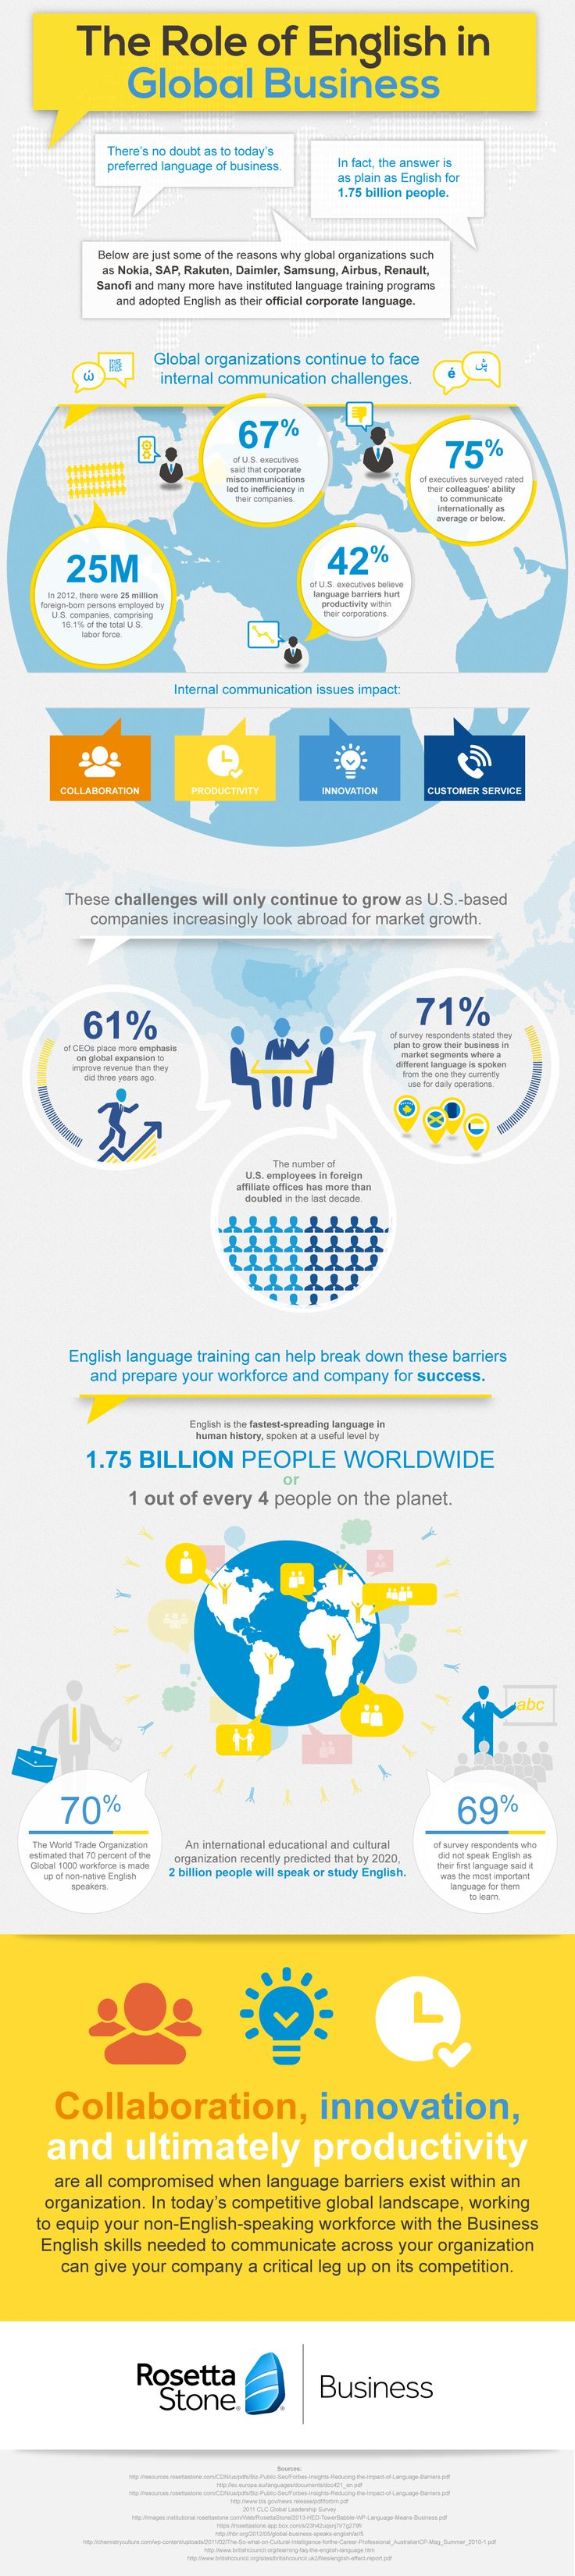 #English as the Lingua Franca of Business #language #infographic